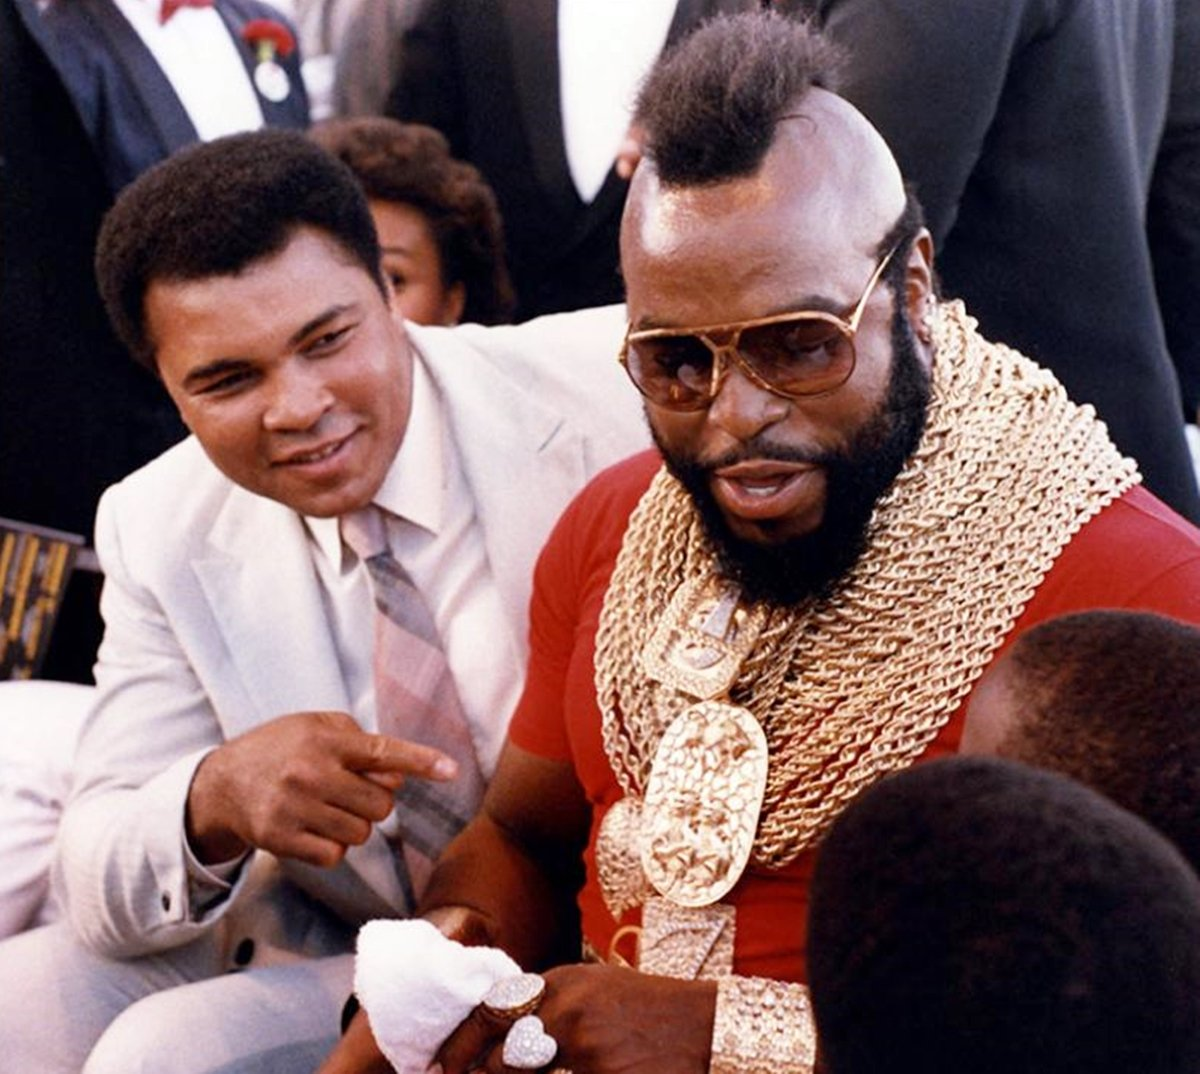 8 26 10 Things You Probably Didn't Know About Mr. T